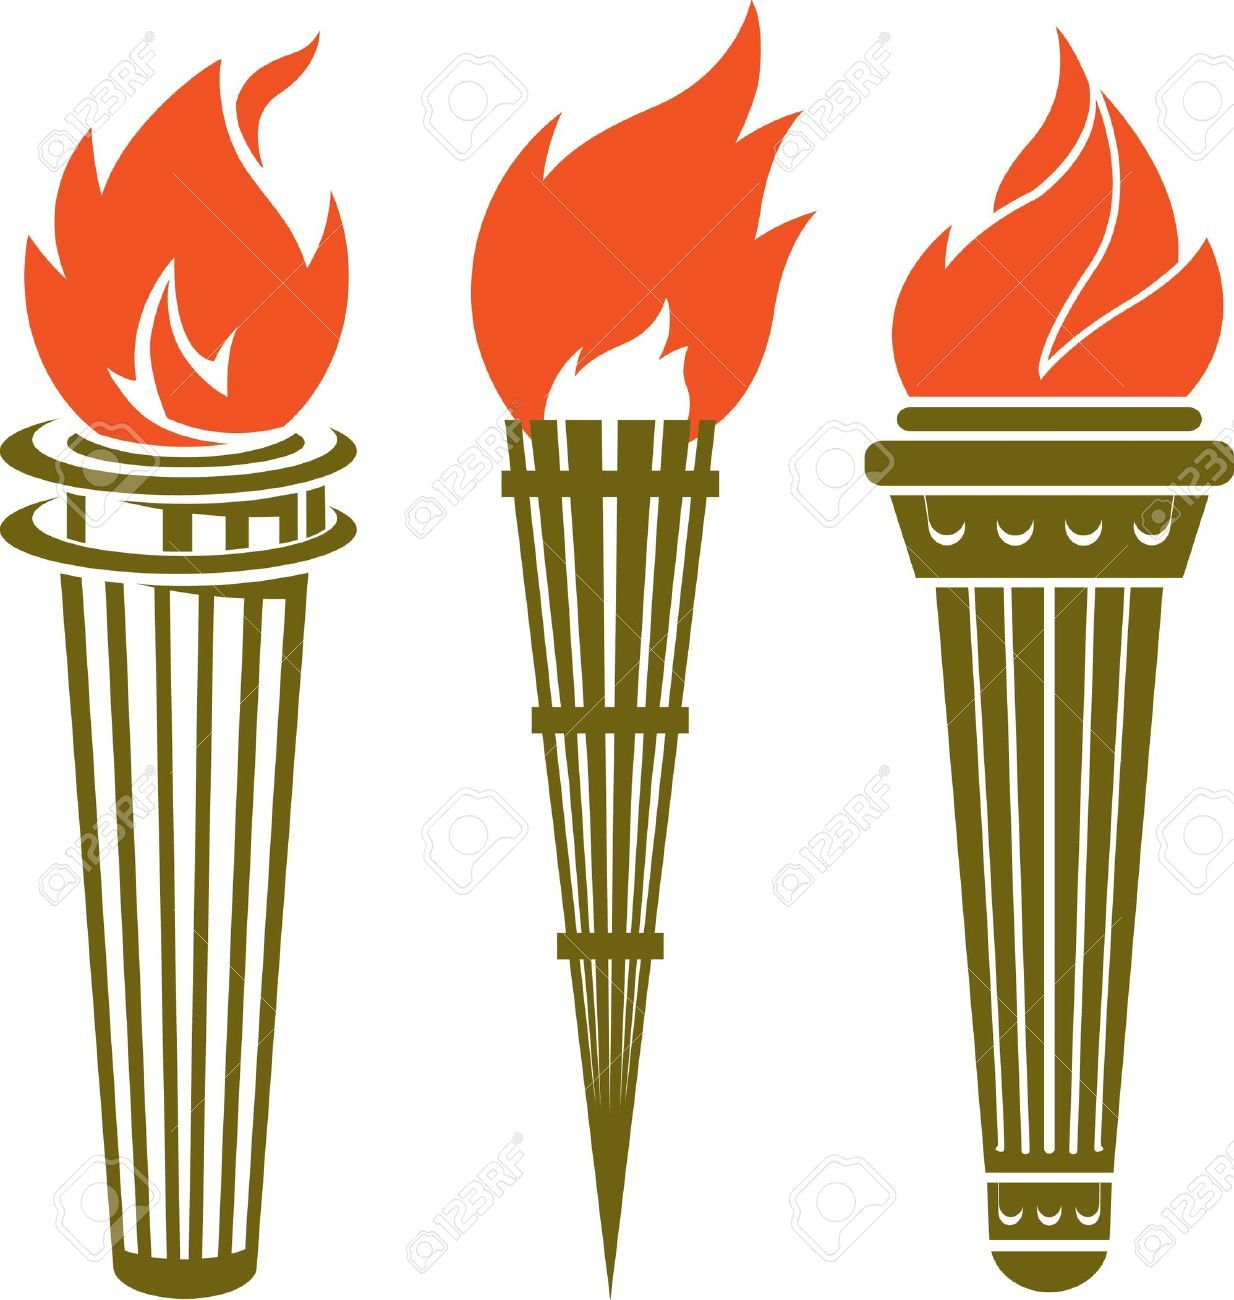 Torch Stock Vector Illustration And Royalty Free Torch Clipart.